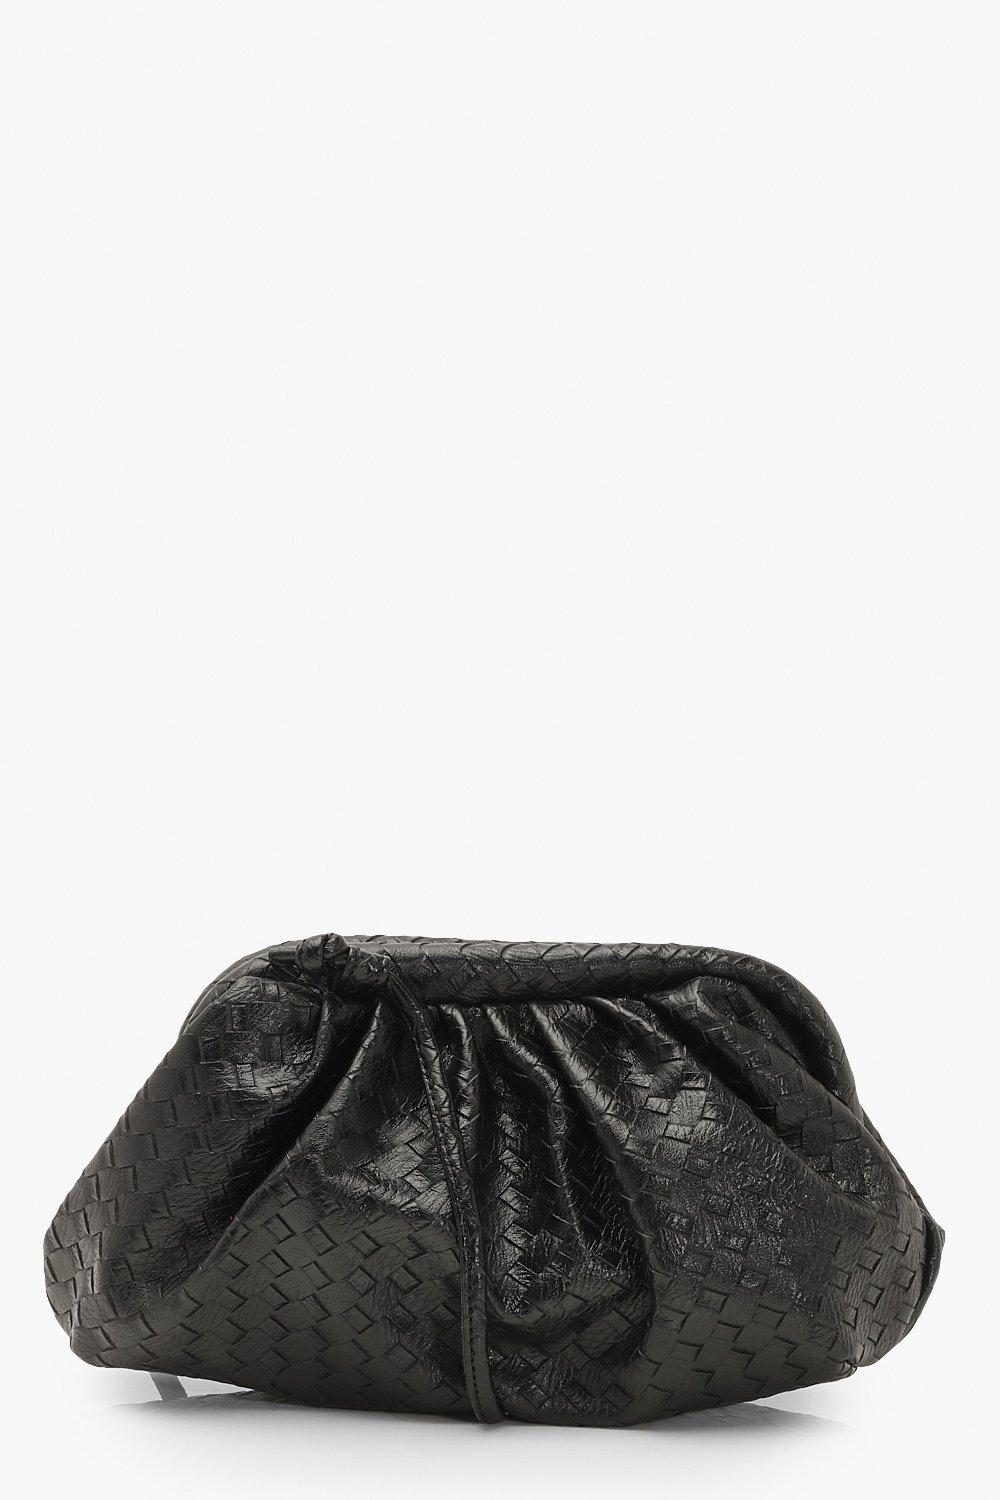 boohoo Womens Slouchy Mini Weave Clutch Bag - Black - One Size, Black